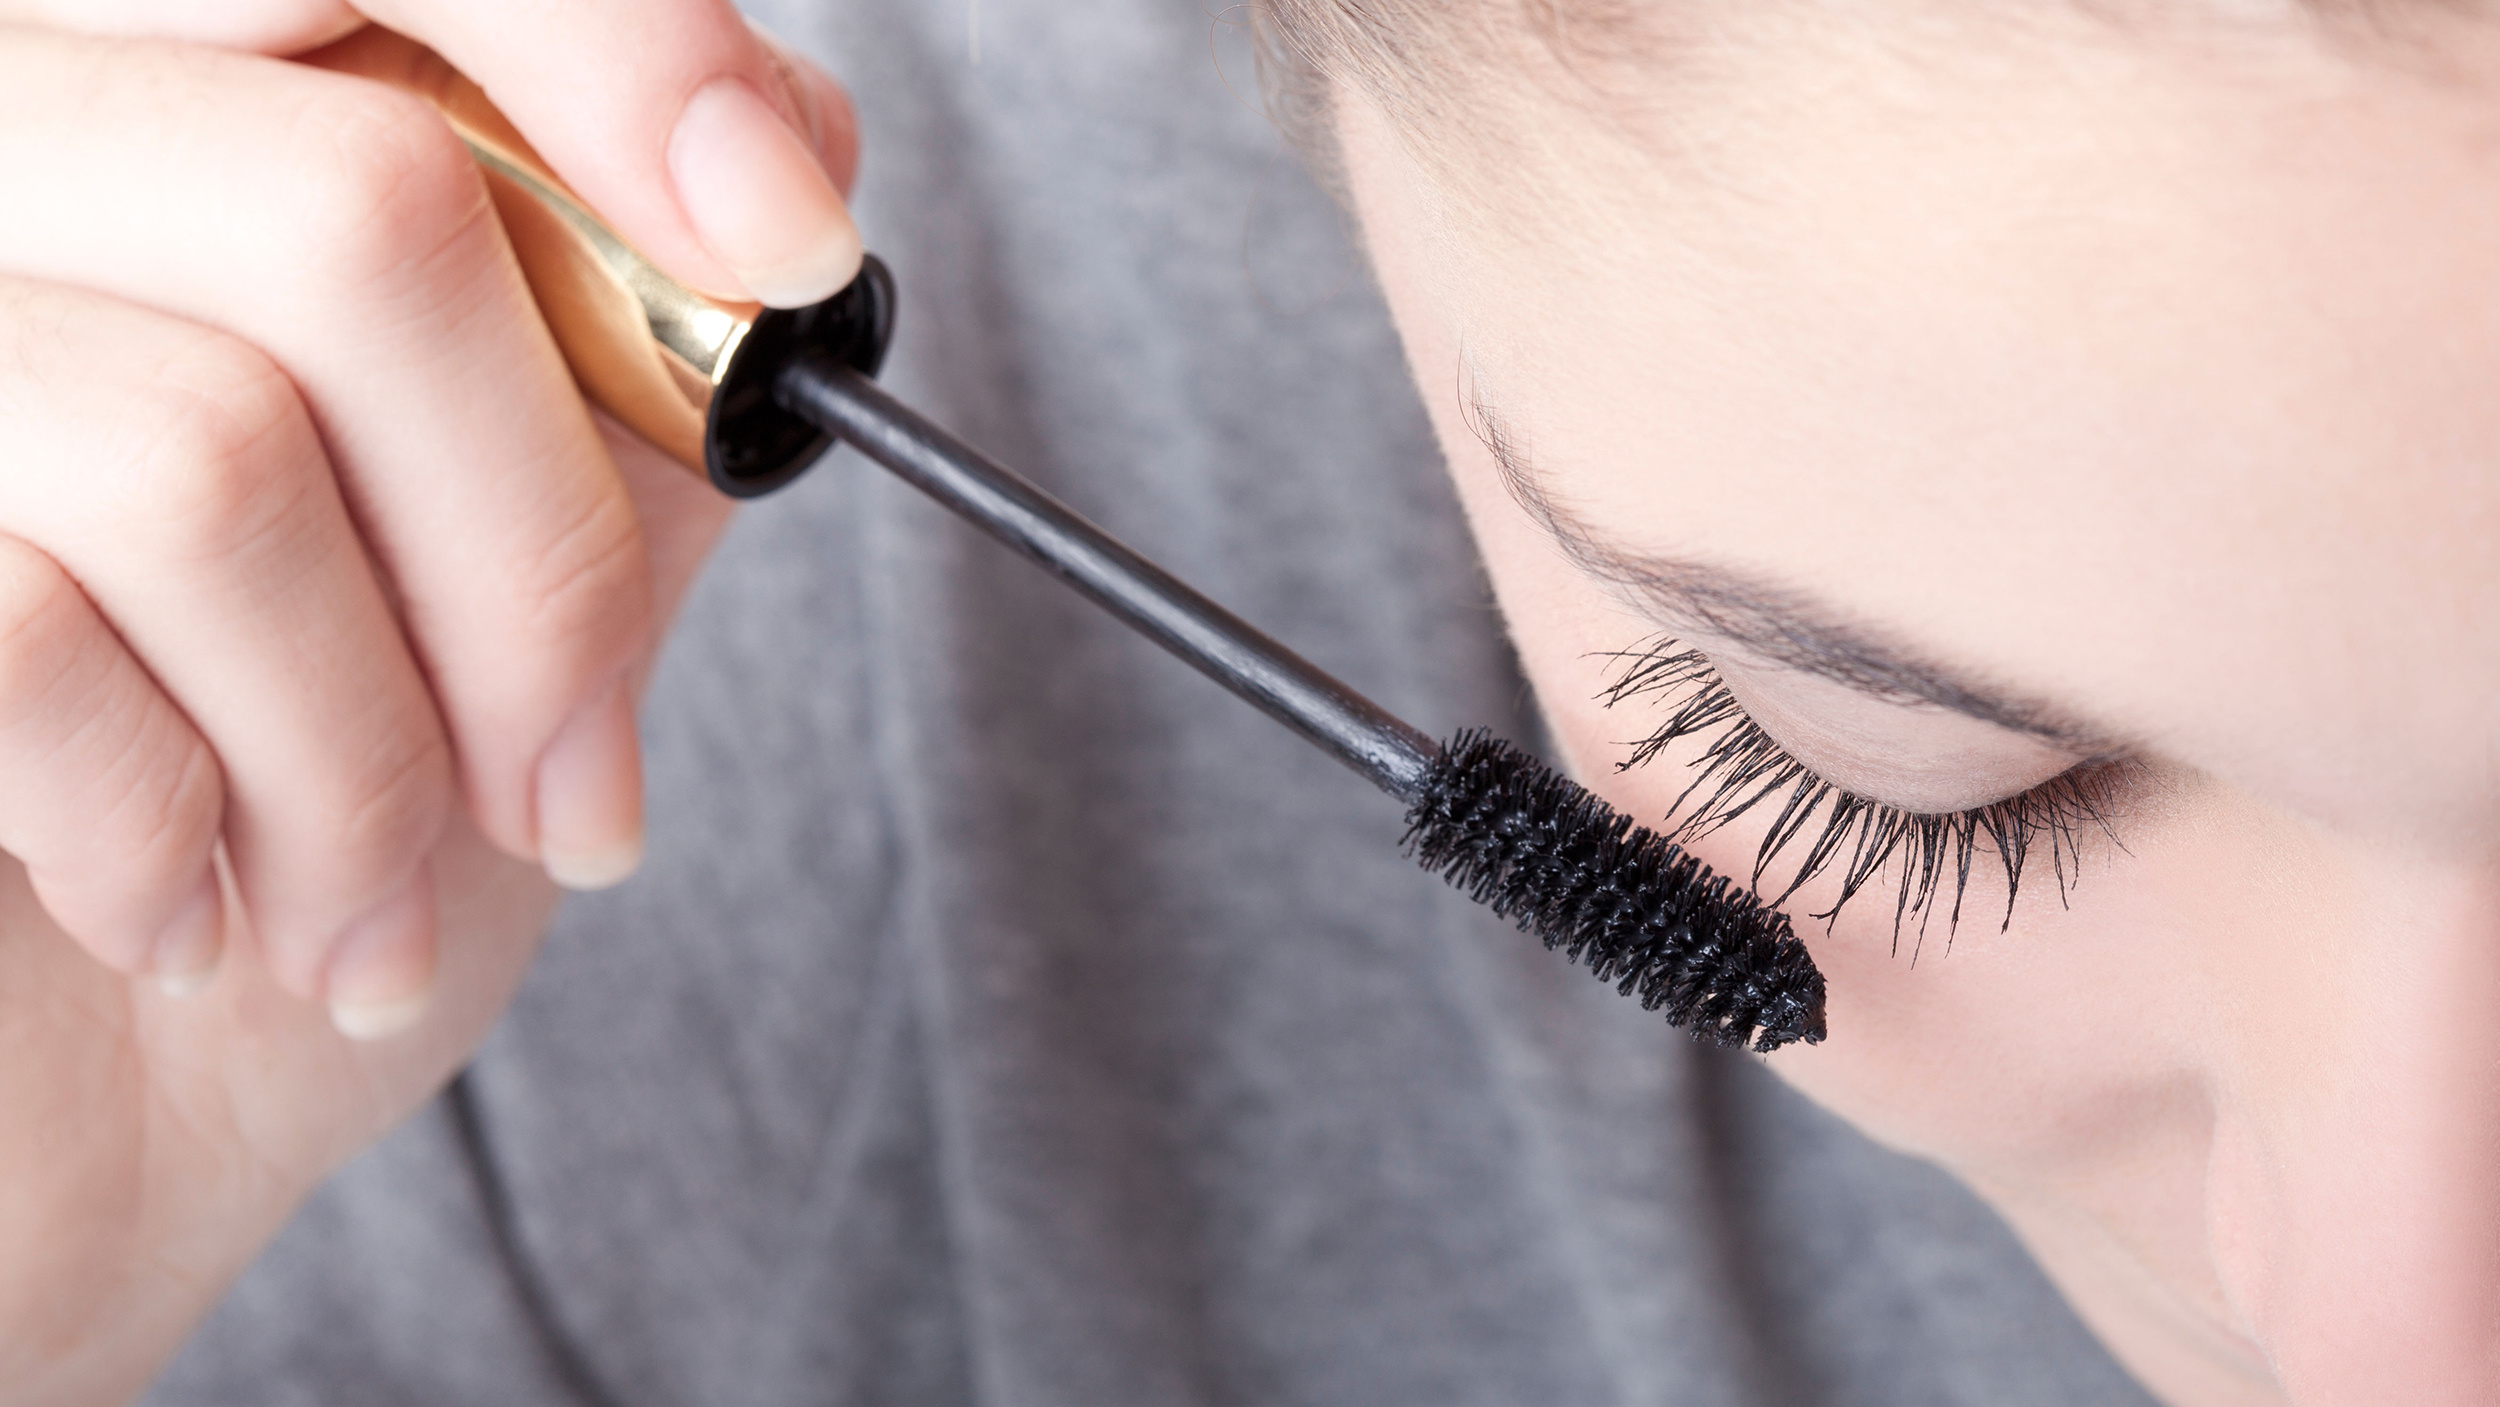 DTGHEP teenage girl applying mascara